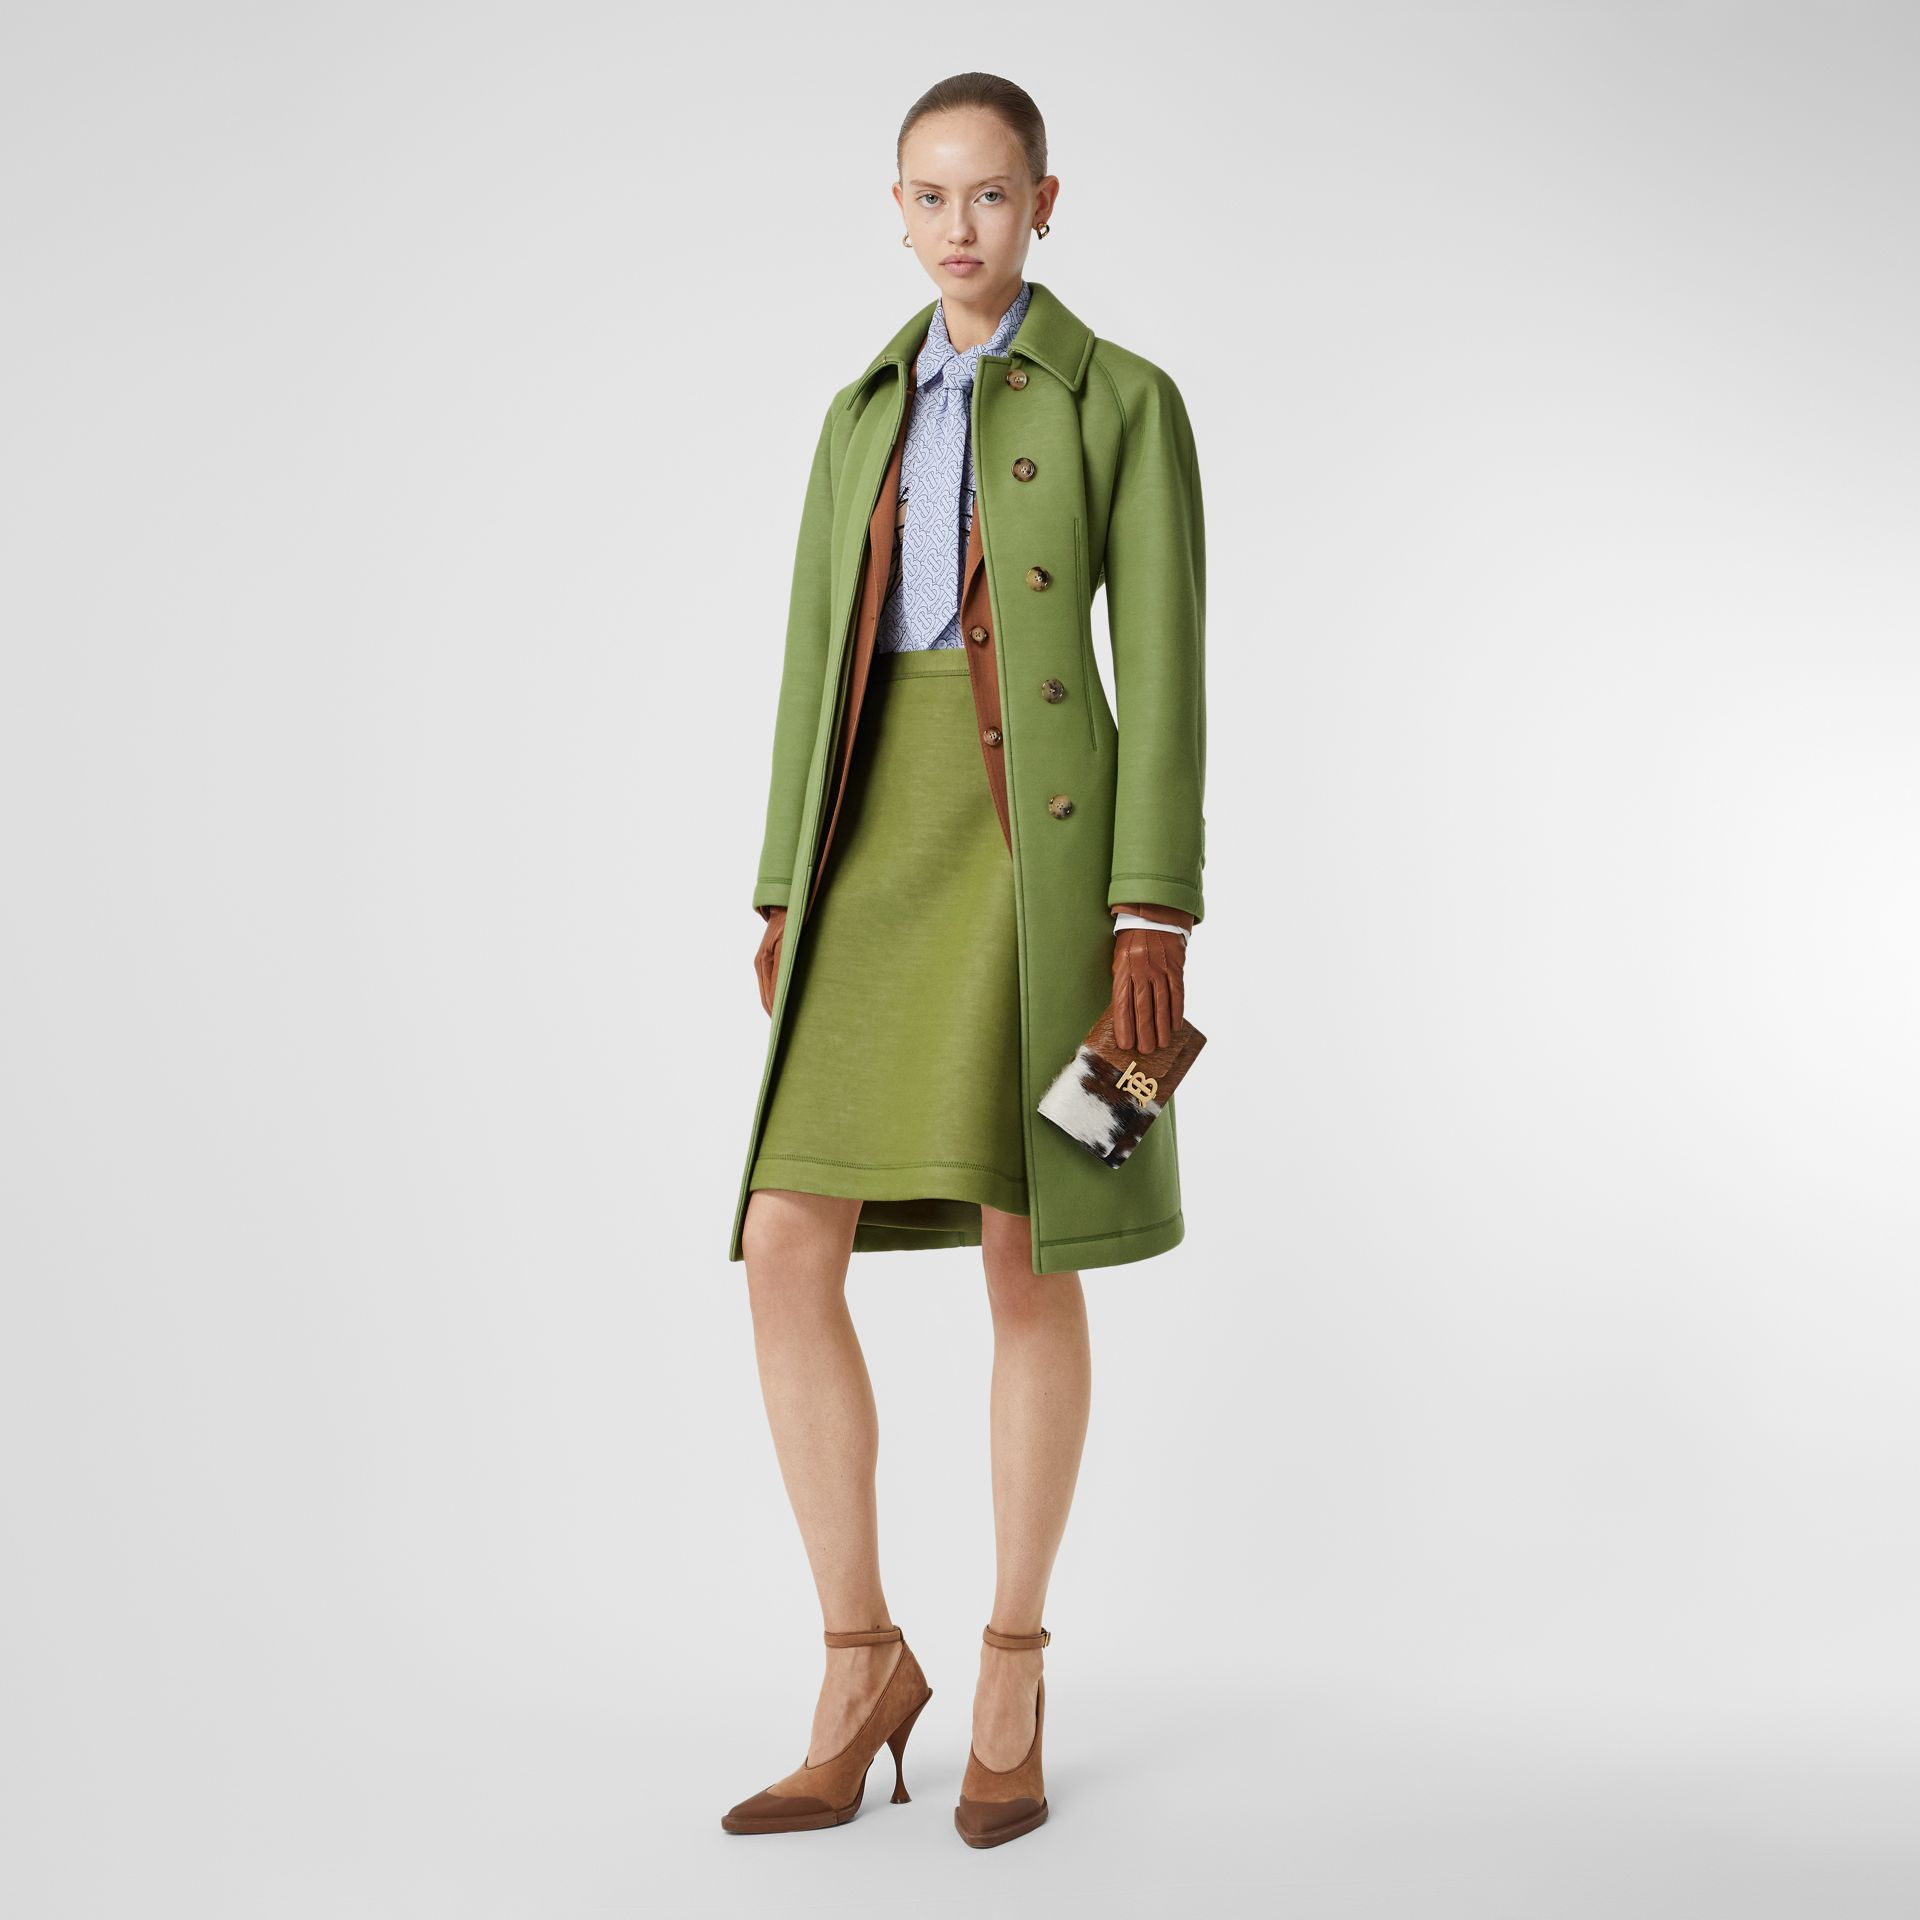 Double-faced Neoprene Skirt in Cedar Green - Women | Burberry - gallery image 4